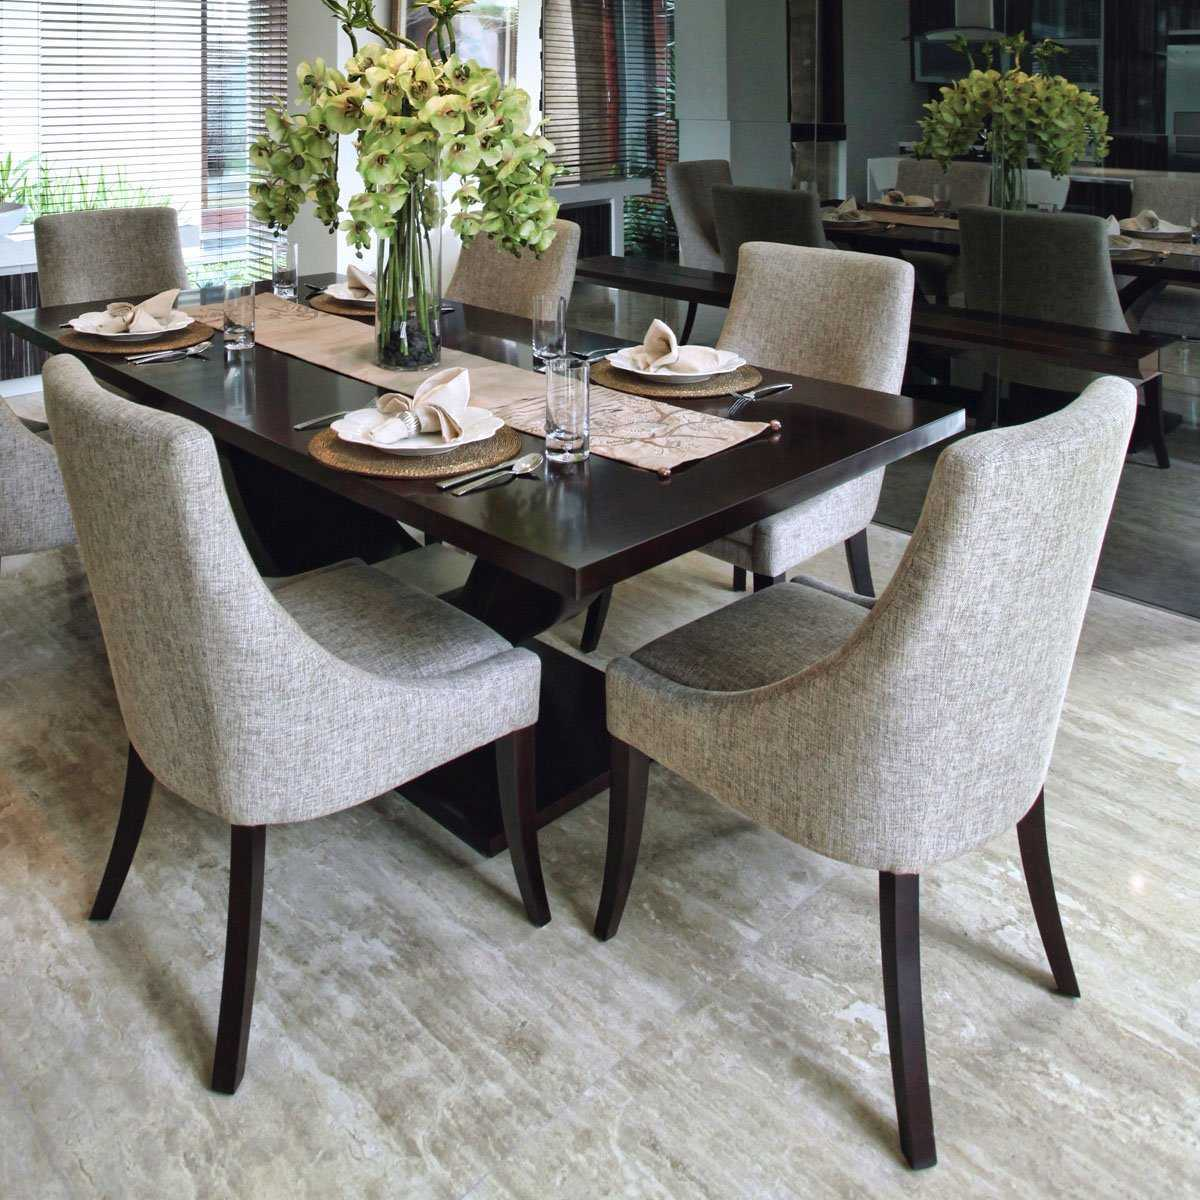 Dining room dining chairs our collections presidio presidio dining chair furnituretables and